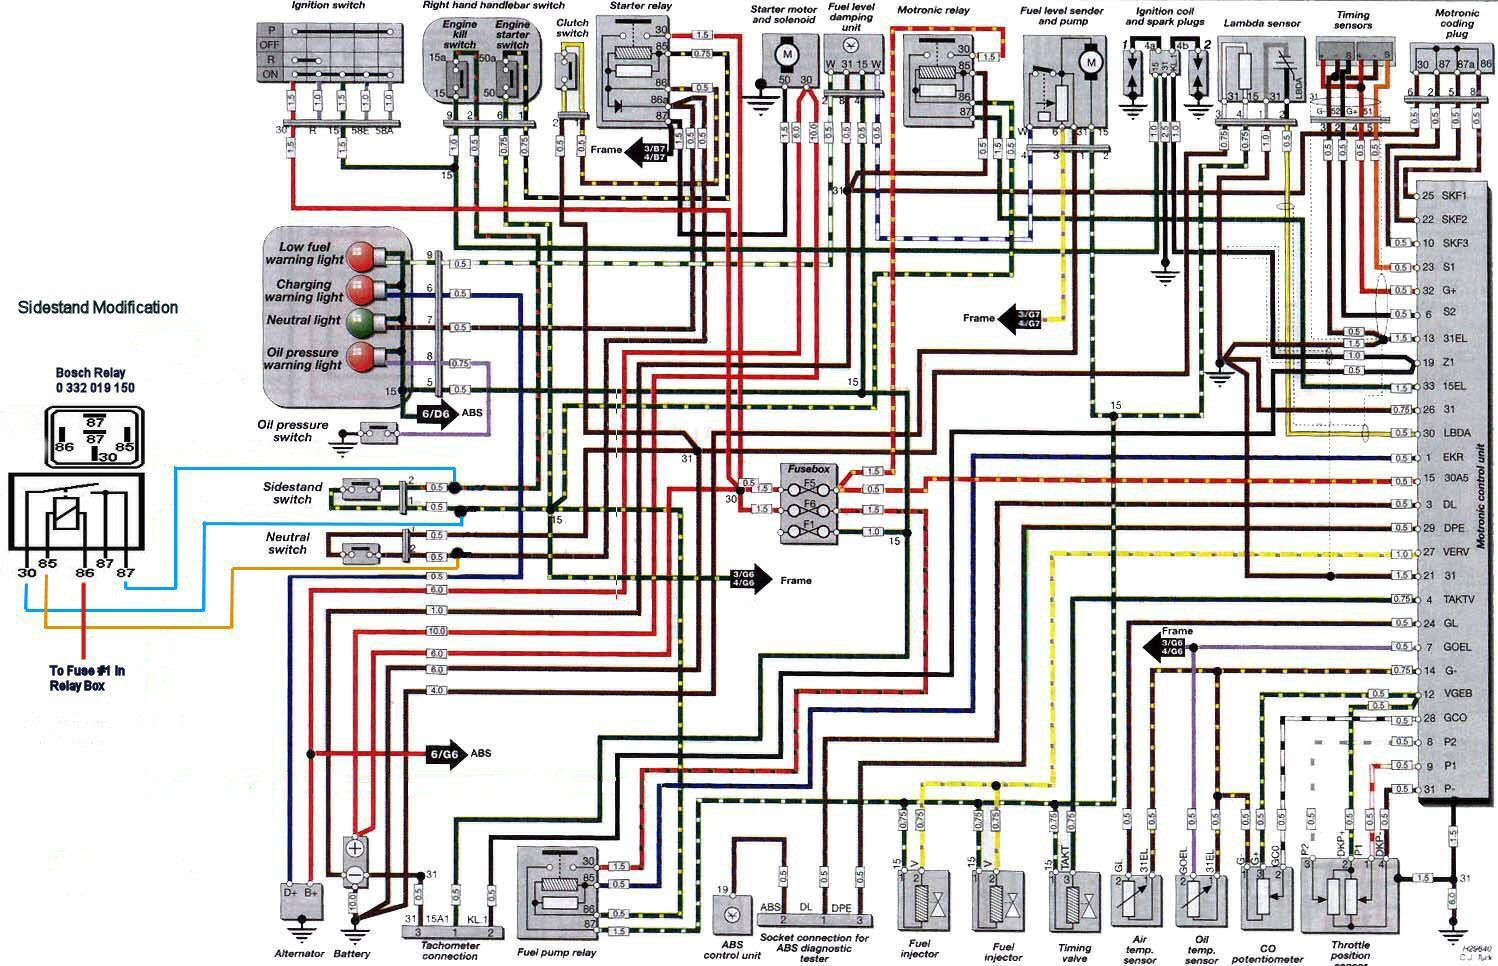 hight resolution of r1150rt fuse box wiring diagram gor1150rt fuse box wiring diagram bmw r1150rt wiring diagram wiring librarybmw